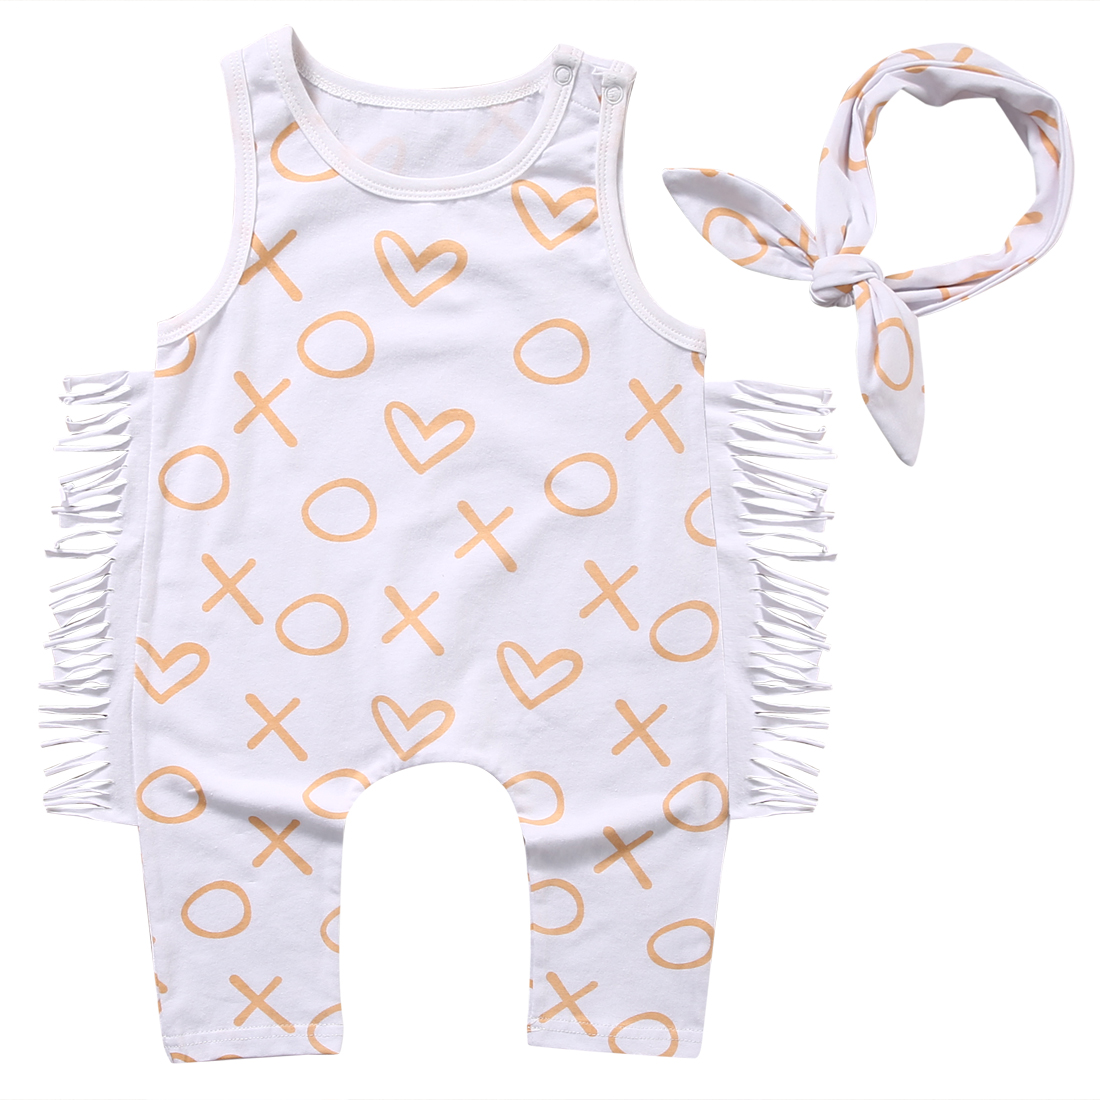 Newborn Baby Girl Kids Sleeveless Tassel Romper Jumpsuit Summer Baby Clothes Cotton Baby Girl Romper Sunsuit Outfits 2017 summer toddler kids girls striped baby romper off shoulder flare sleeve cotton clothes jumpsuit outfits sunsuit 0 4t